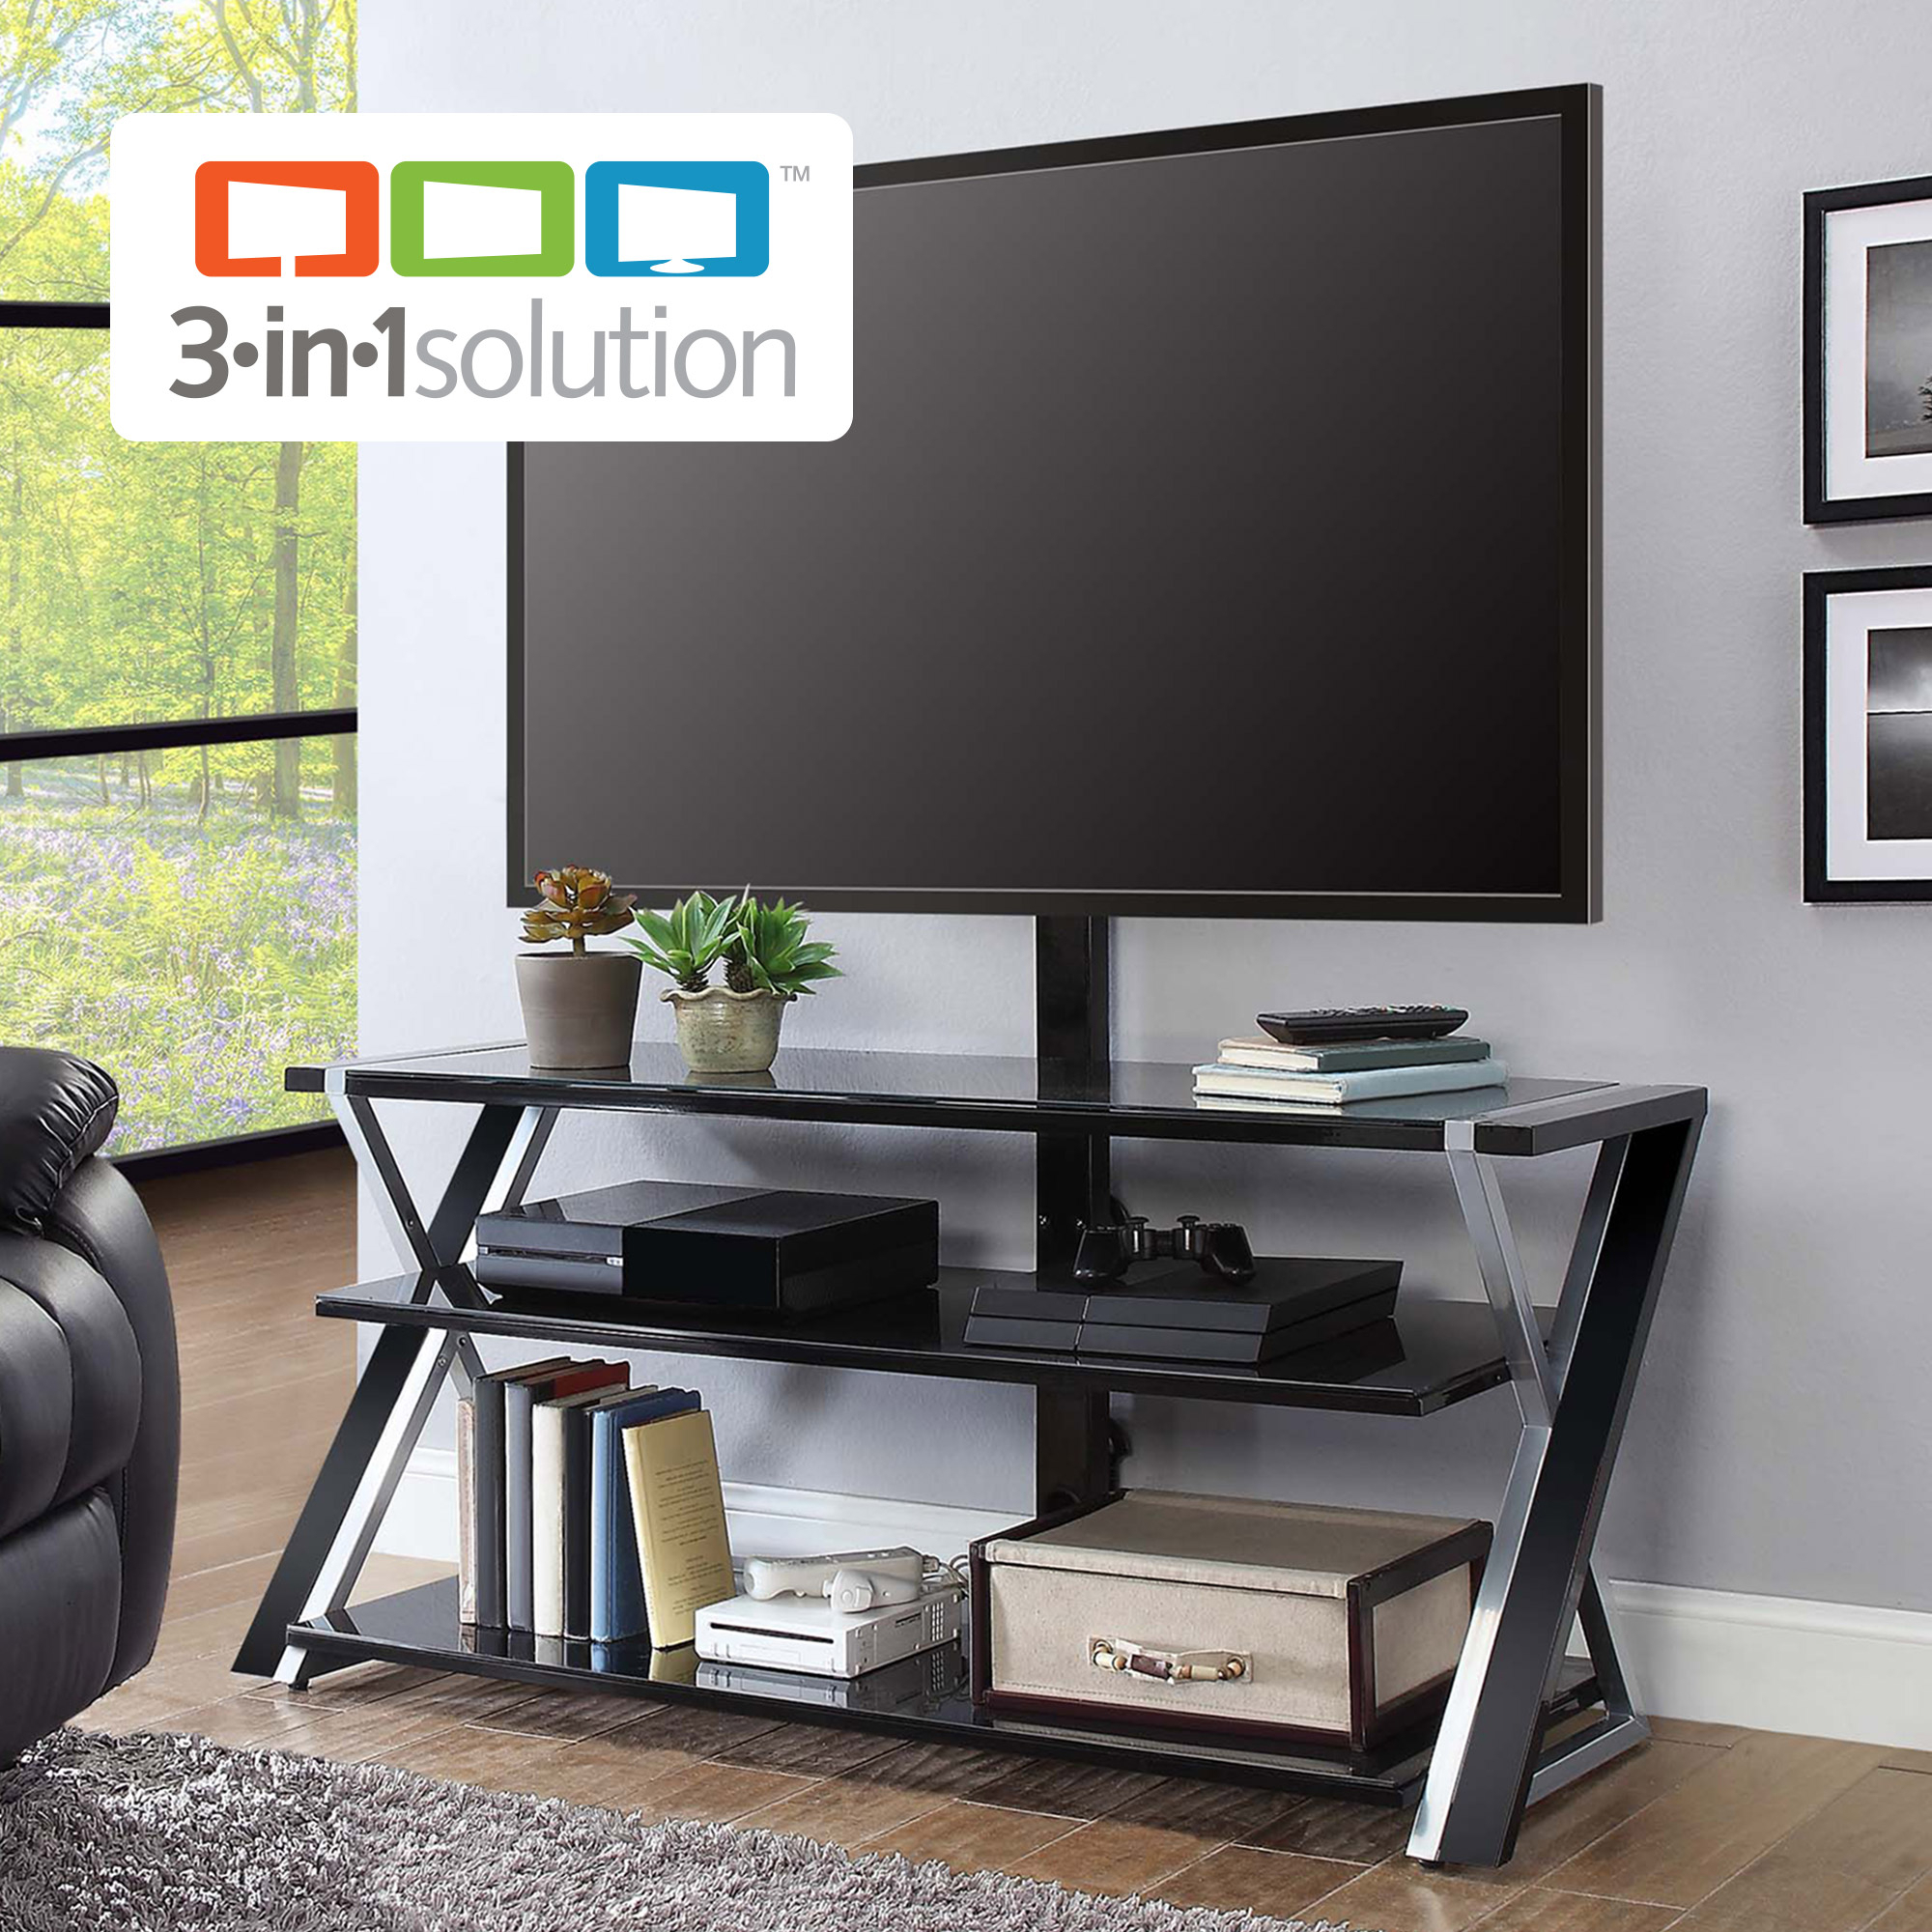 """Whalen Xavier 3 In 1 Tv Stand For Tvs Up To 70"""", With 3 Display Pertaining To Walton 60 Inch Tv Stands (View 9 of 30)"""